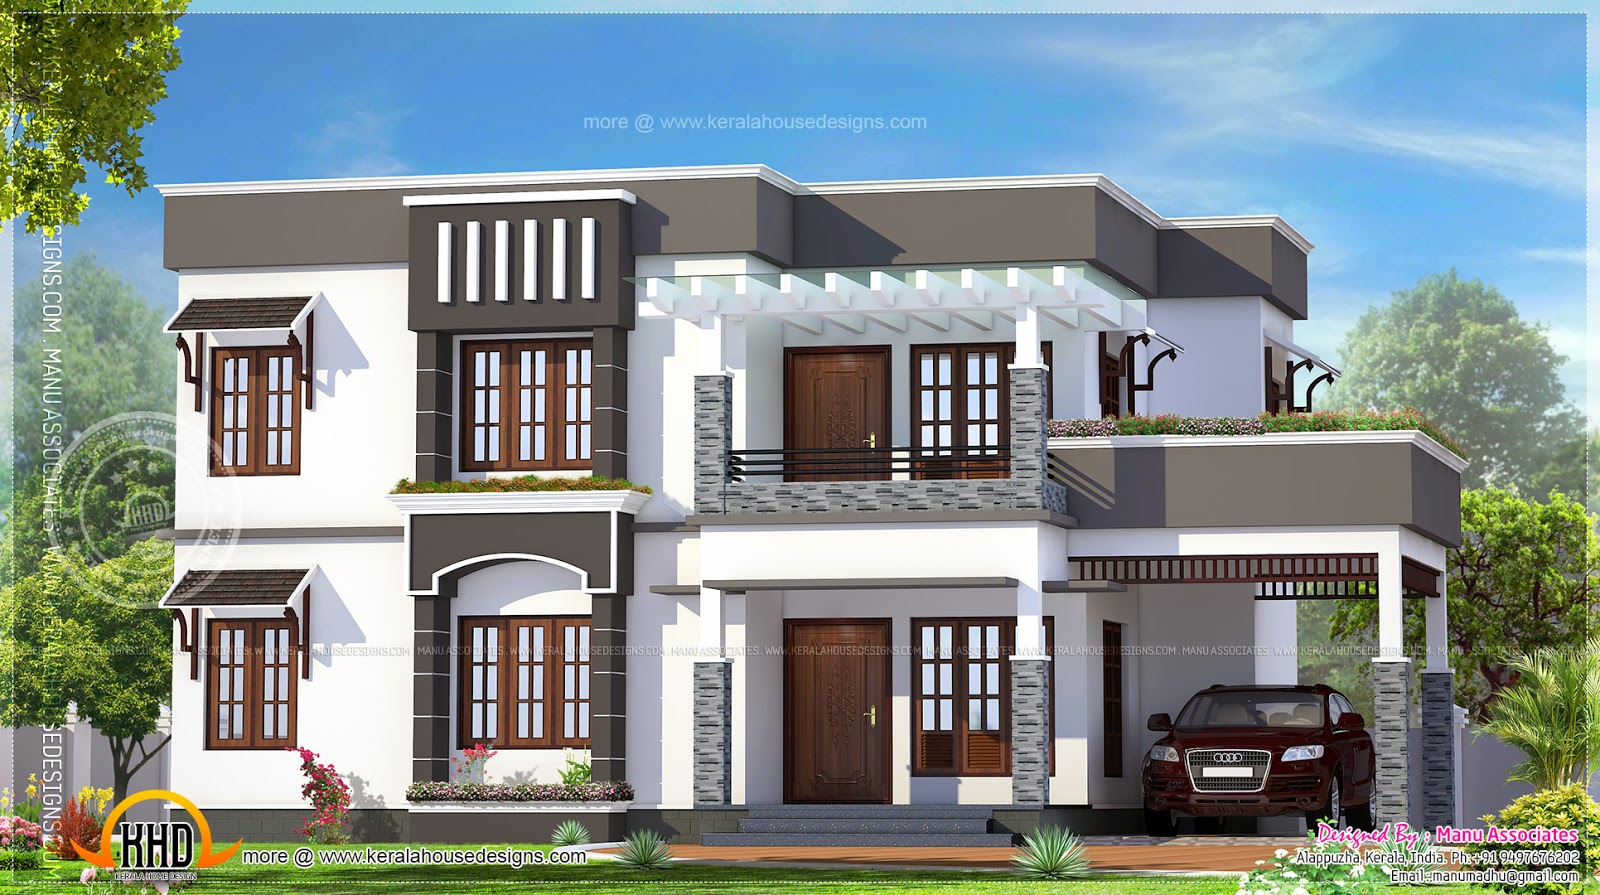 4 bhk flat roof house exterior kerala home design and for Www homedesign com